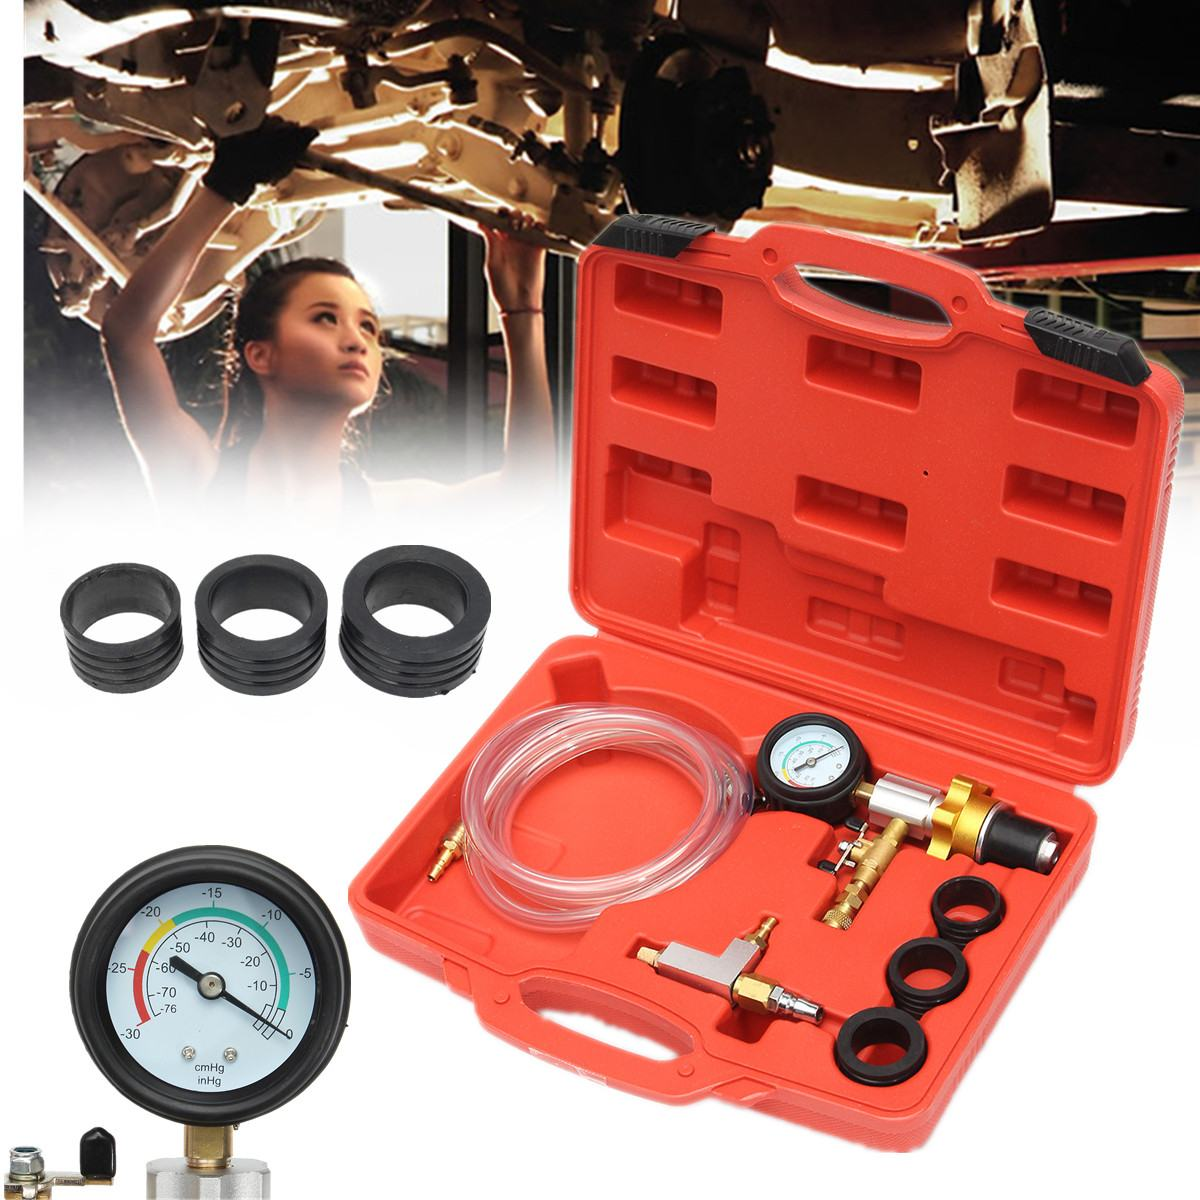 Auto Car Radiator Coolant Vacuum Cooling System Refill & Purging Tool Gauge Kit Quick Coupler Attachments Saves Clean Up Time